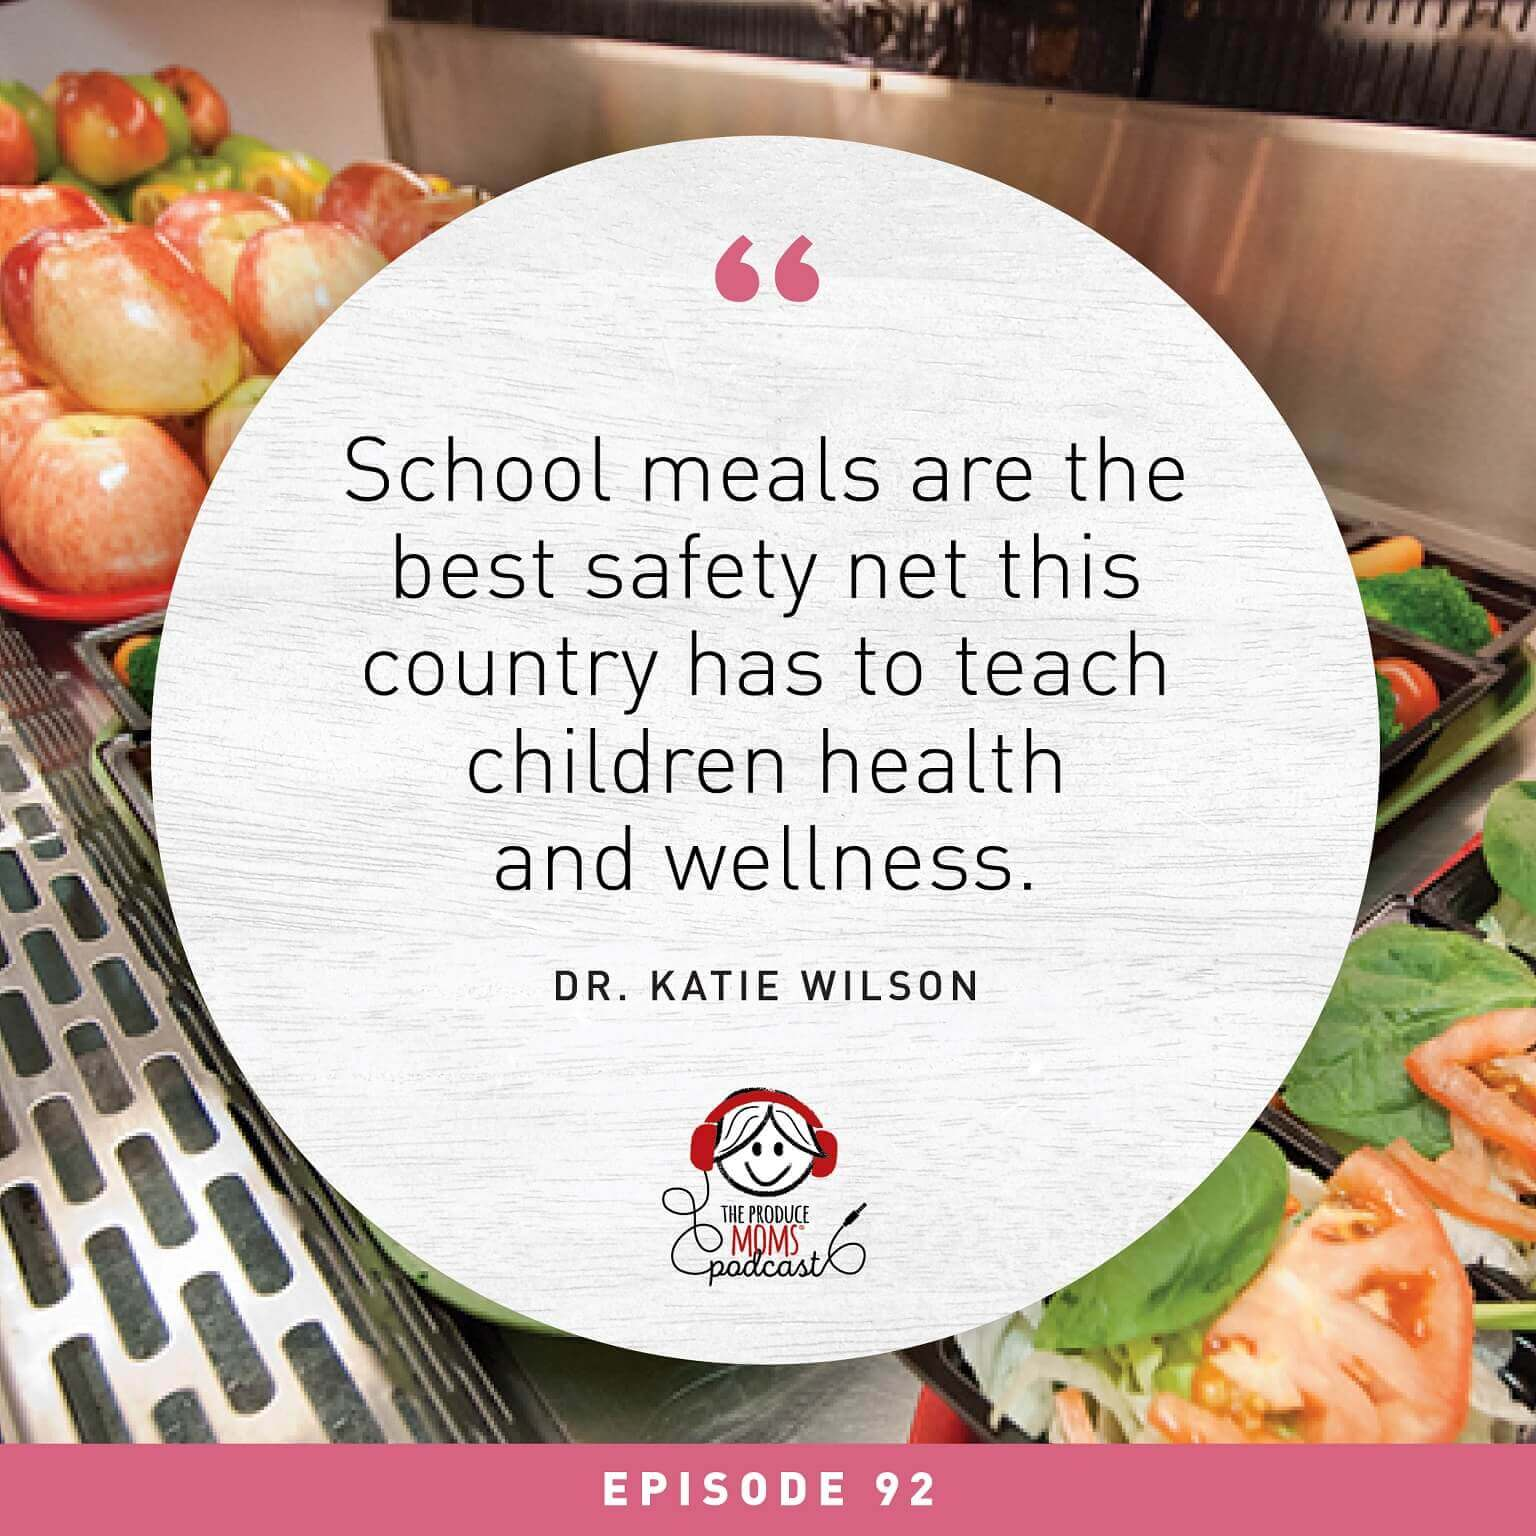 Dr. Katie Wilson quote